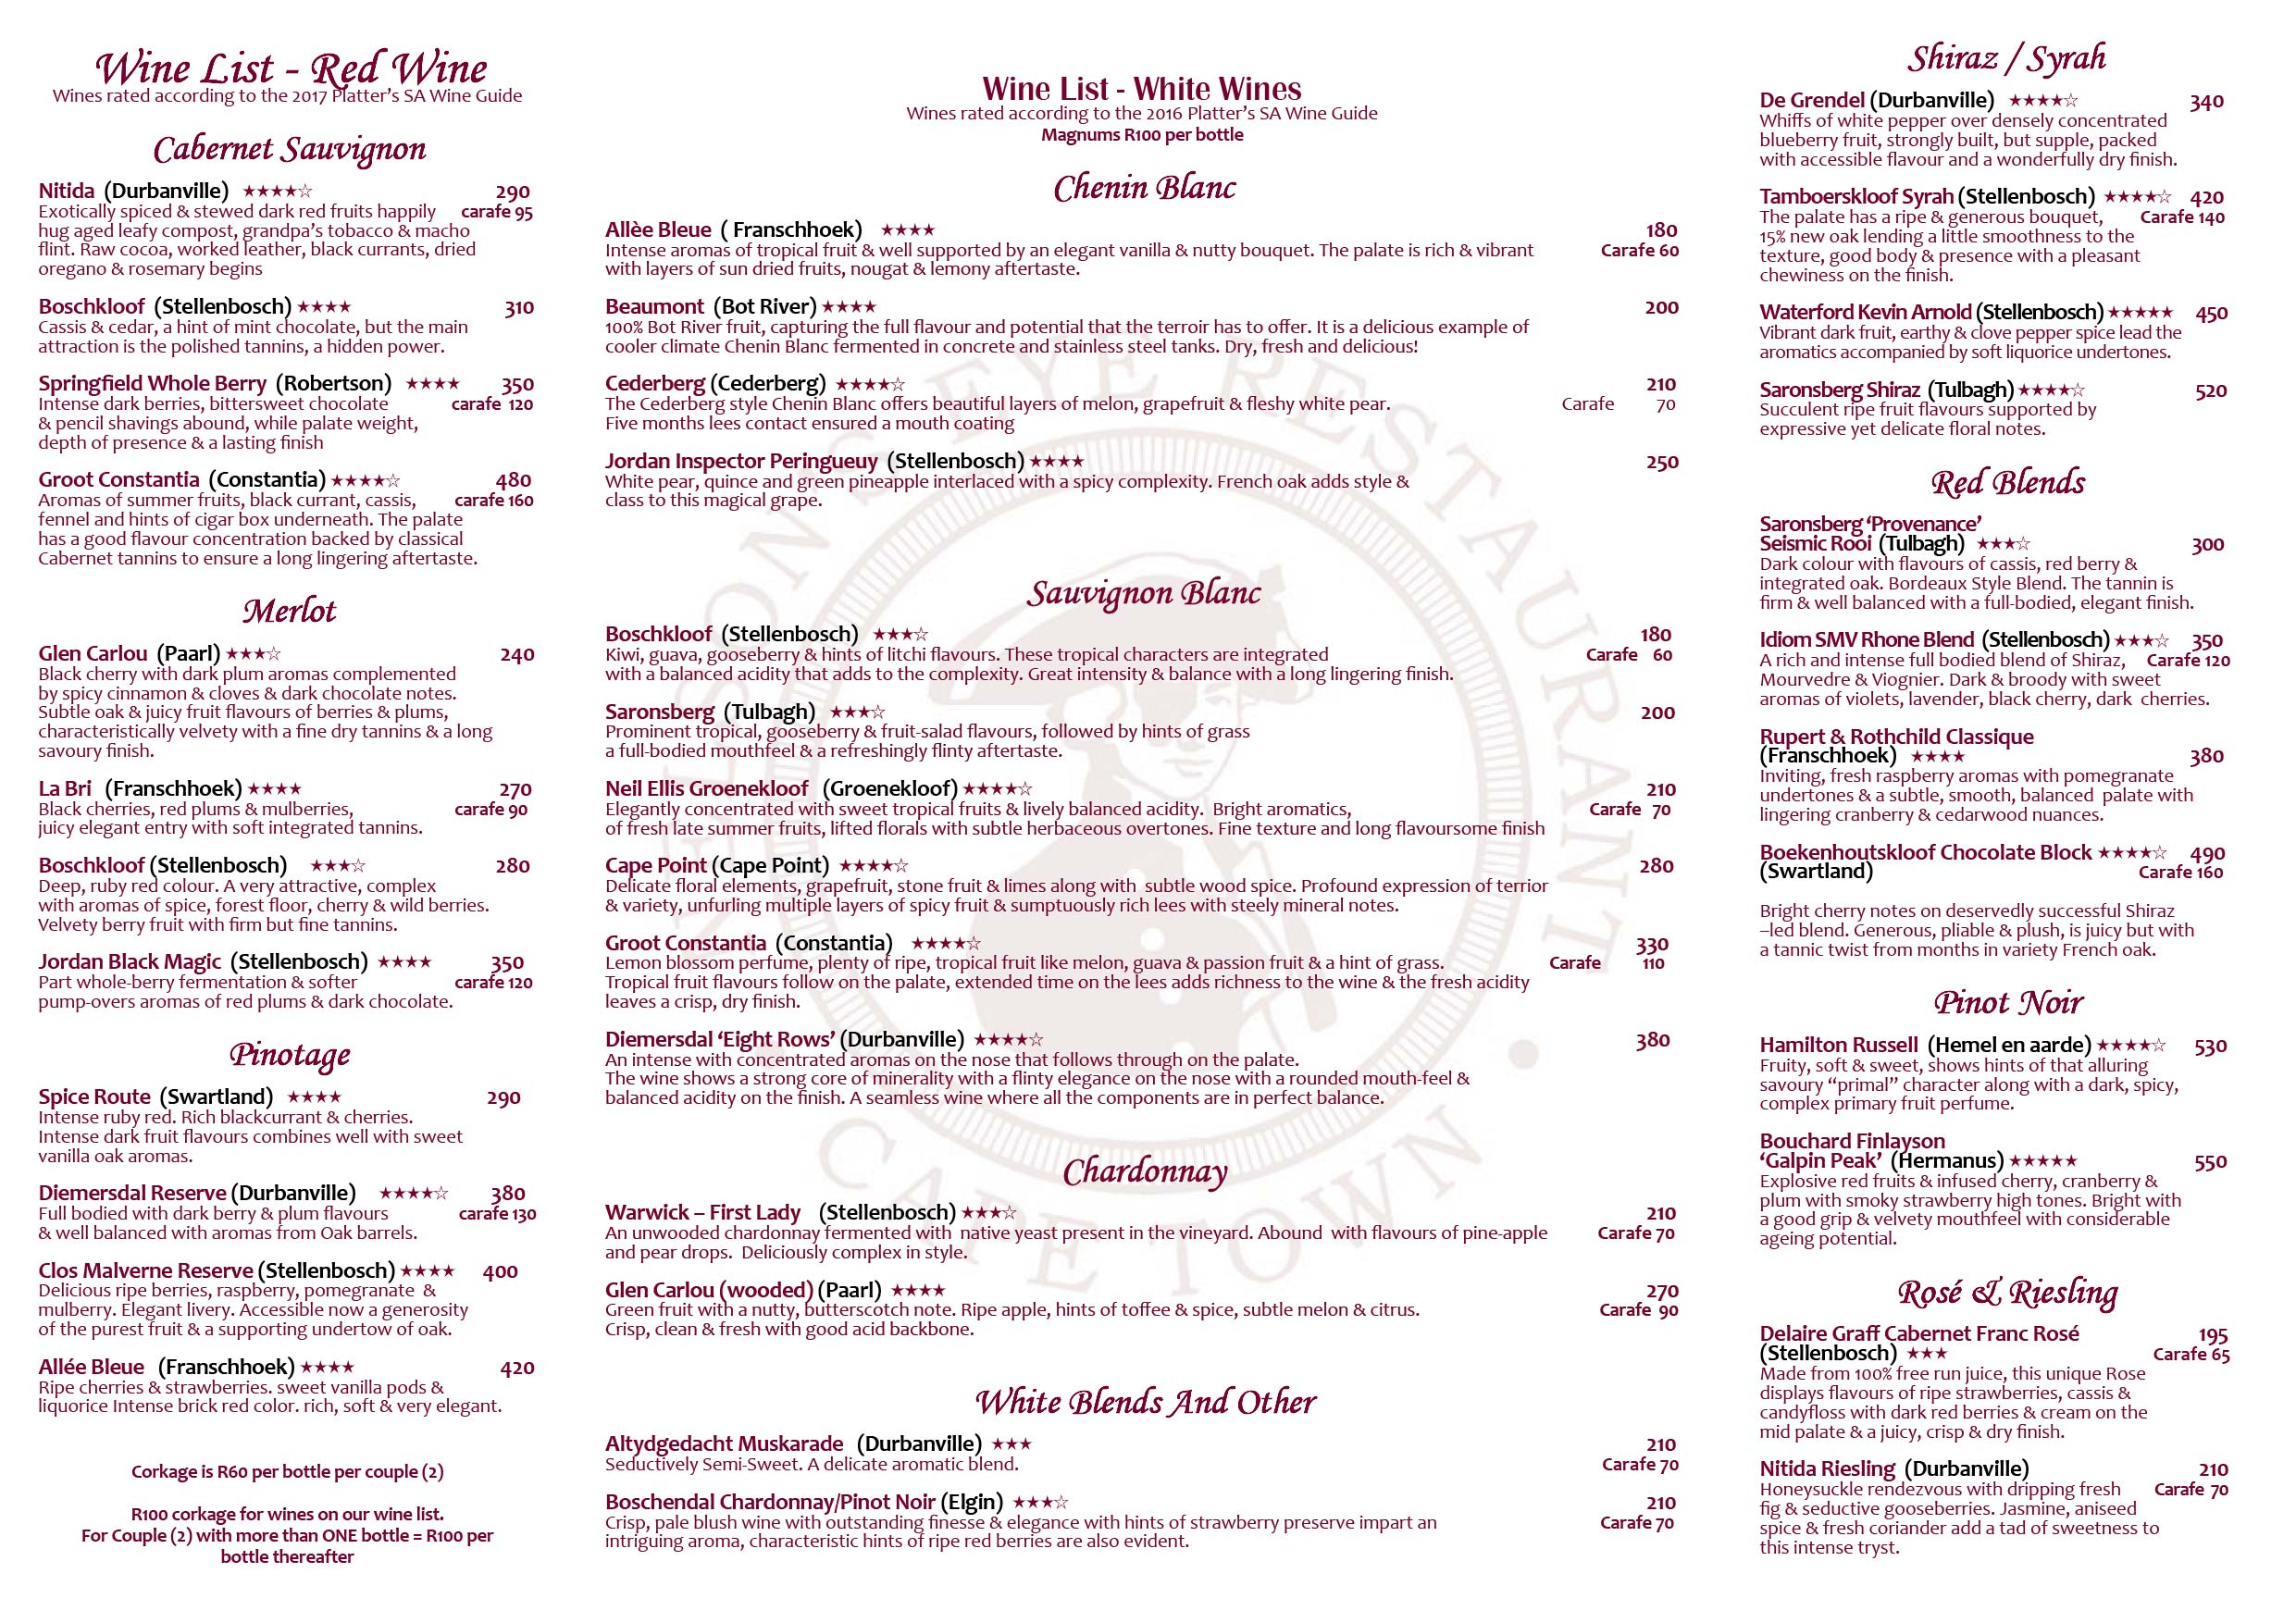 Cucina And Co Wine List Wine List » Nelsons Eye Restaurant